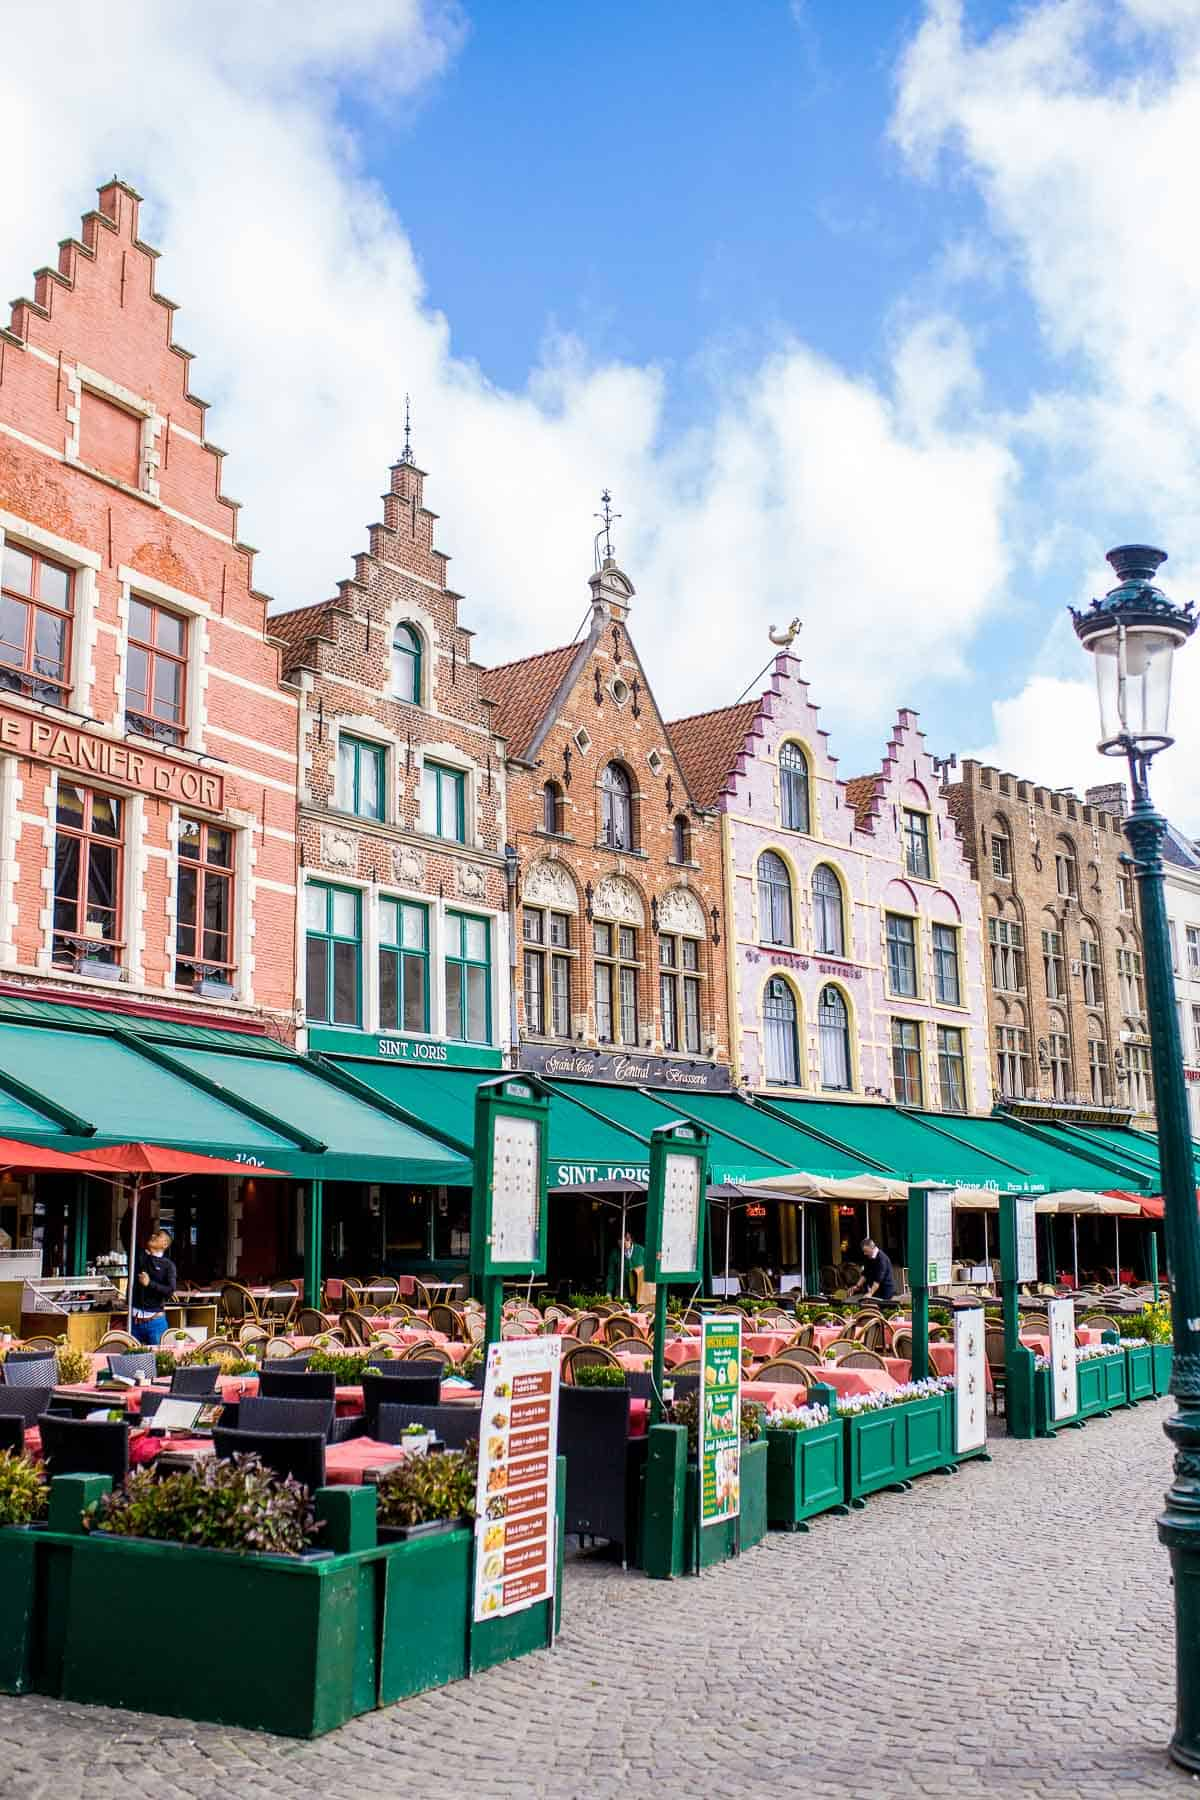 The Market Square is a must visit area of Bruges